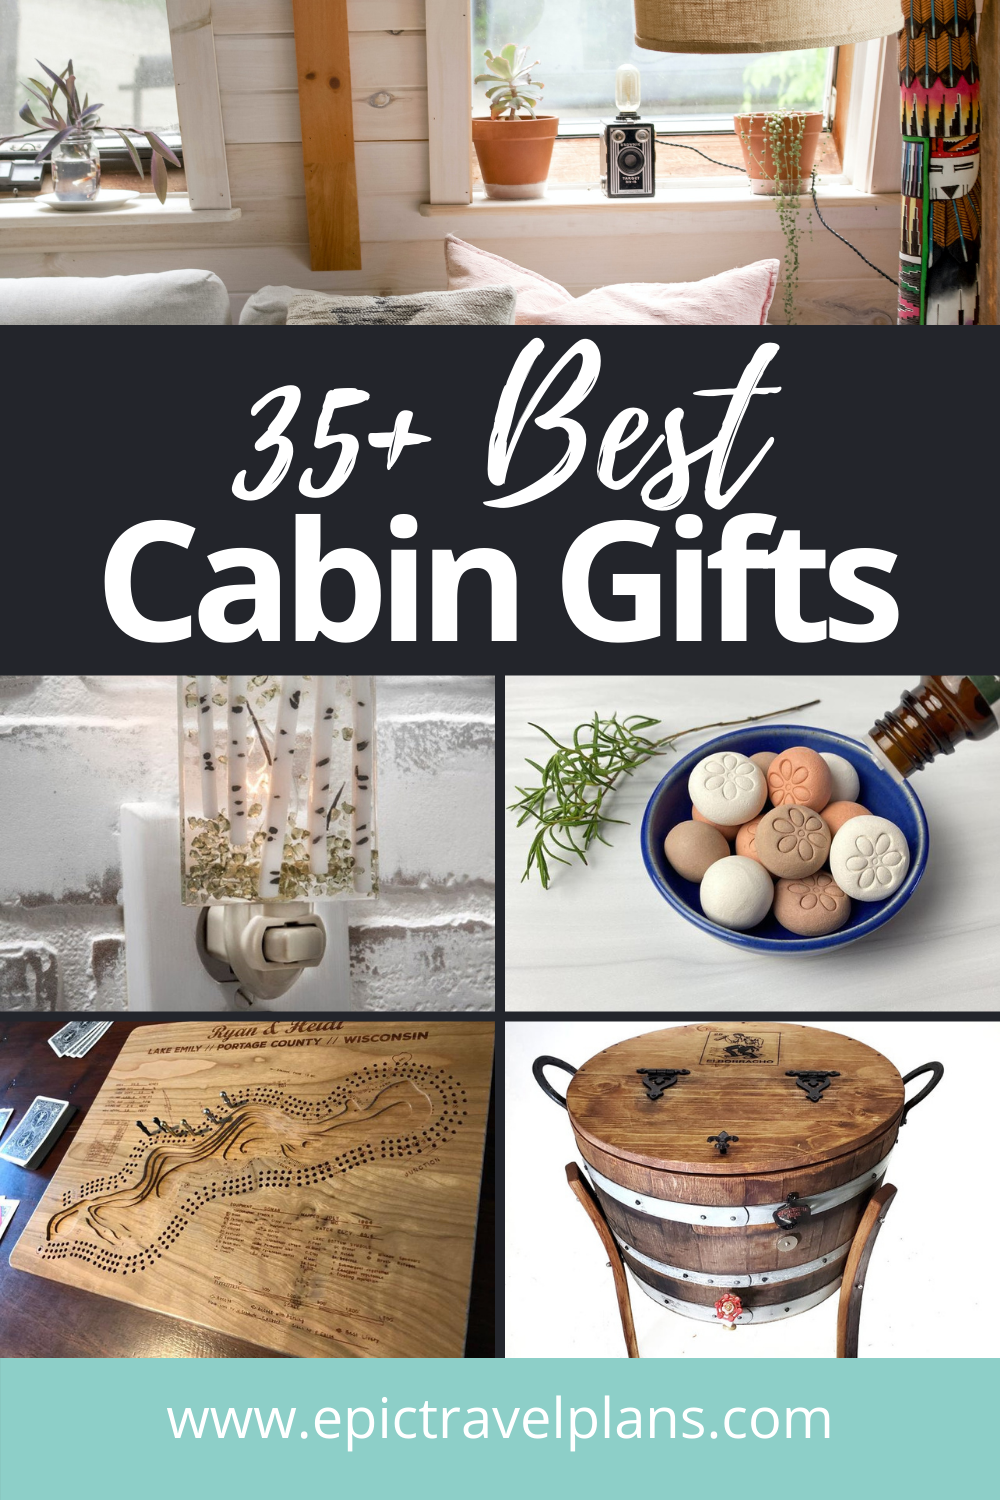 Best cabin gifts, cool things for cabins